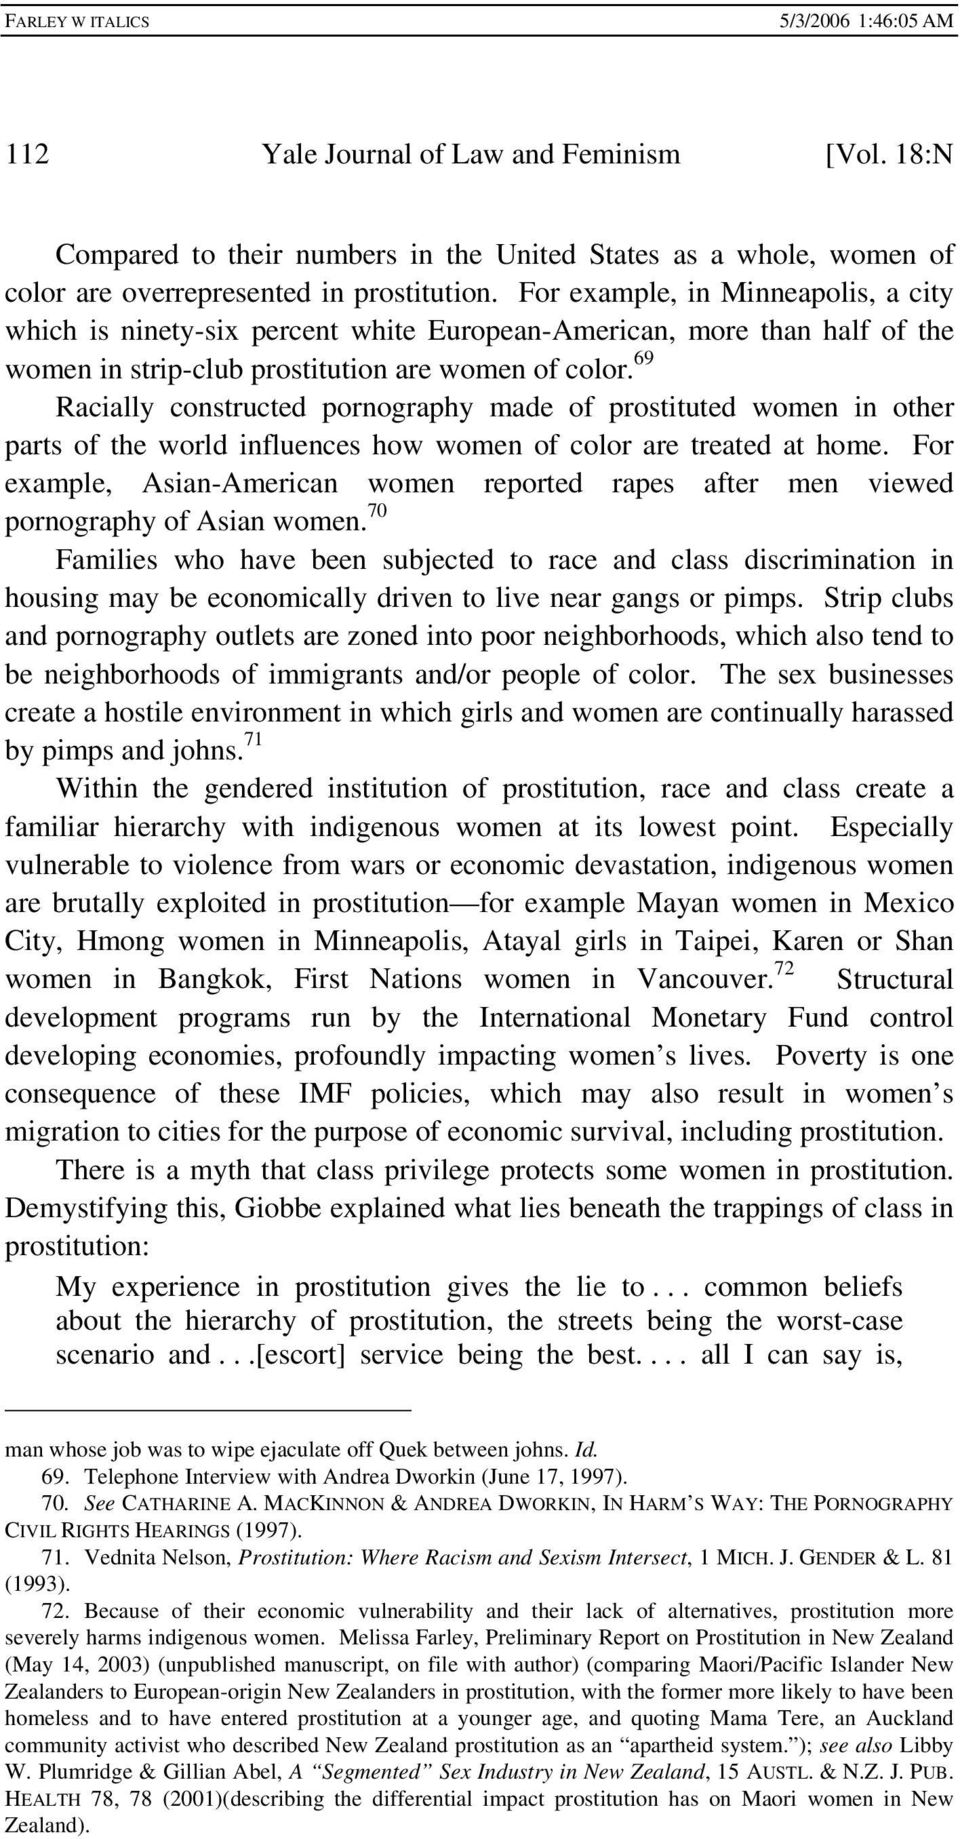 69 Racially constructed pornography made of prostituted women in other parts of the world influences how women of color are treated at home.